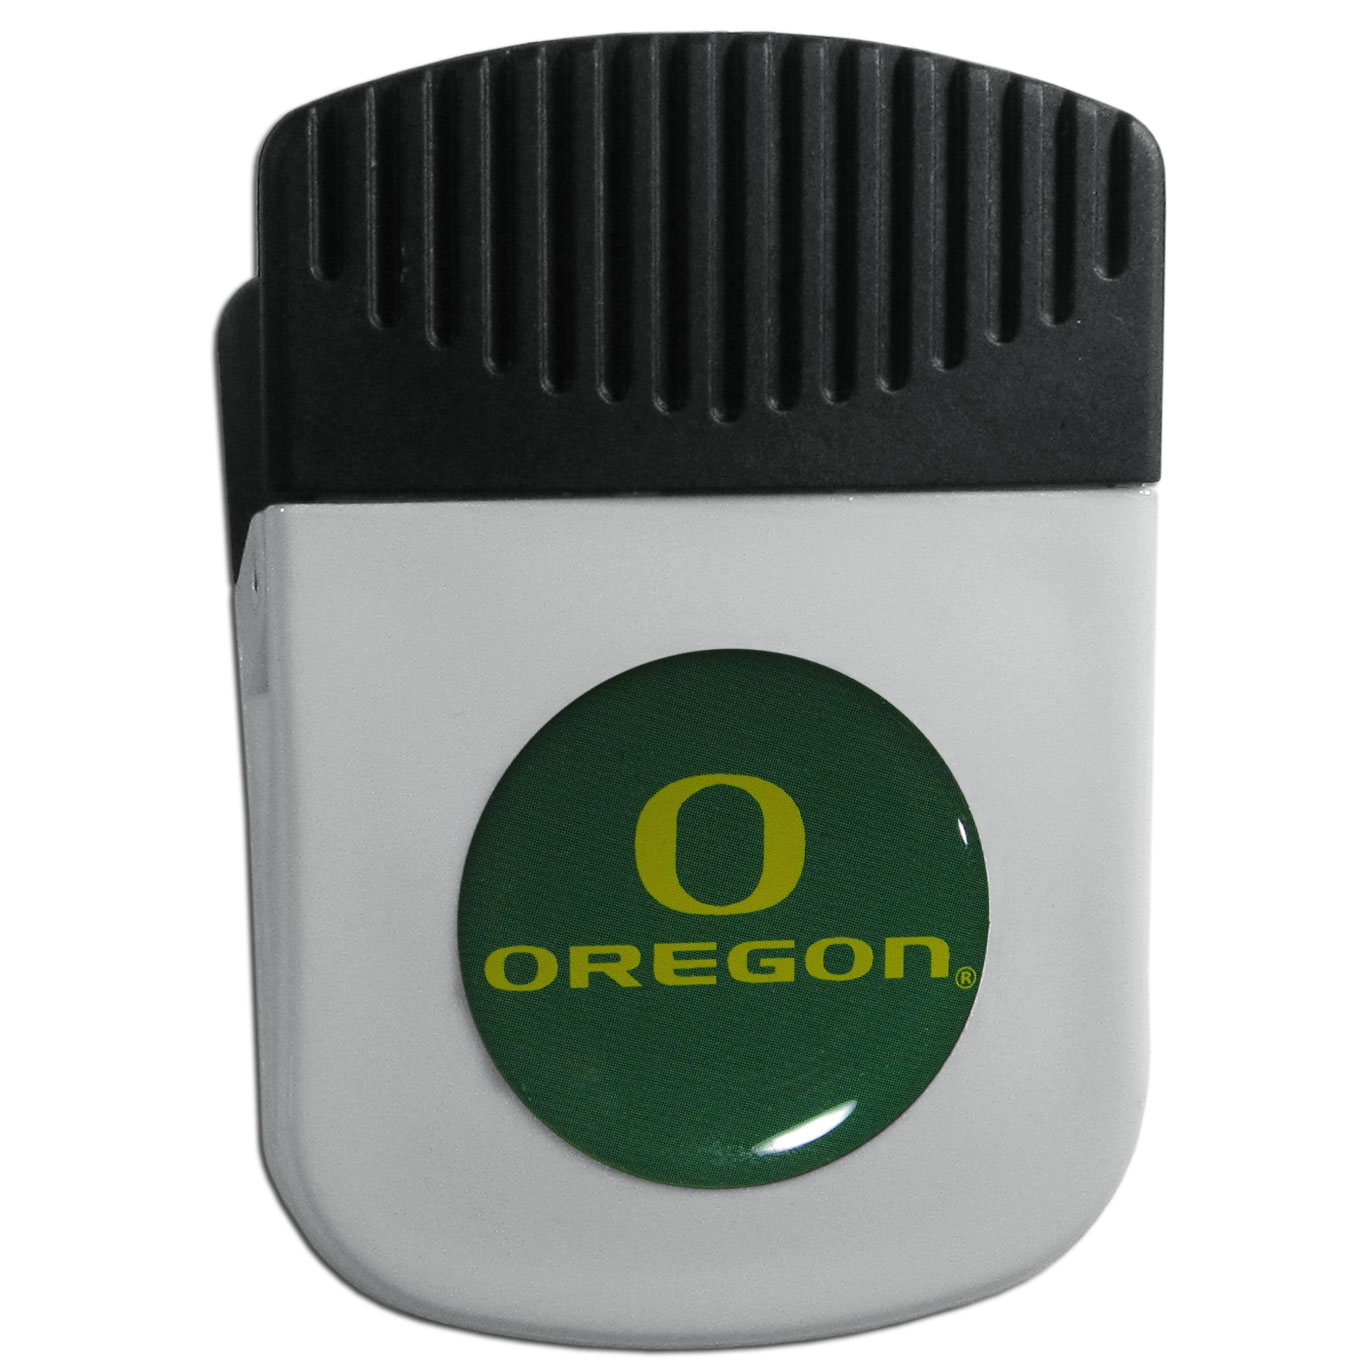 Oregon Ducks Chip Clip Magnet - Use this attractive clip magnet to hold memos, photos or appointment cards on the fridge or take it down keep use it to clip bags shut. The magnet features a domed Oregon Ducks logo.